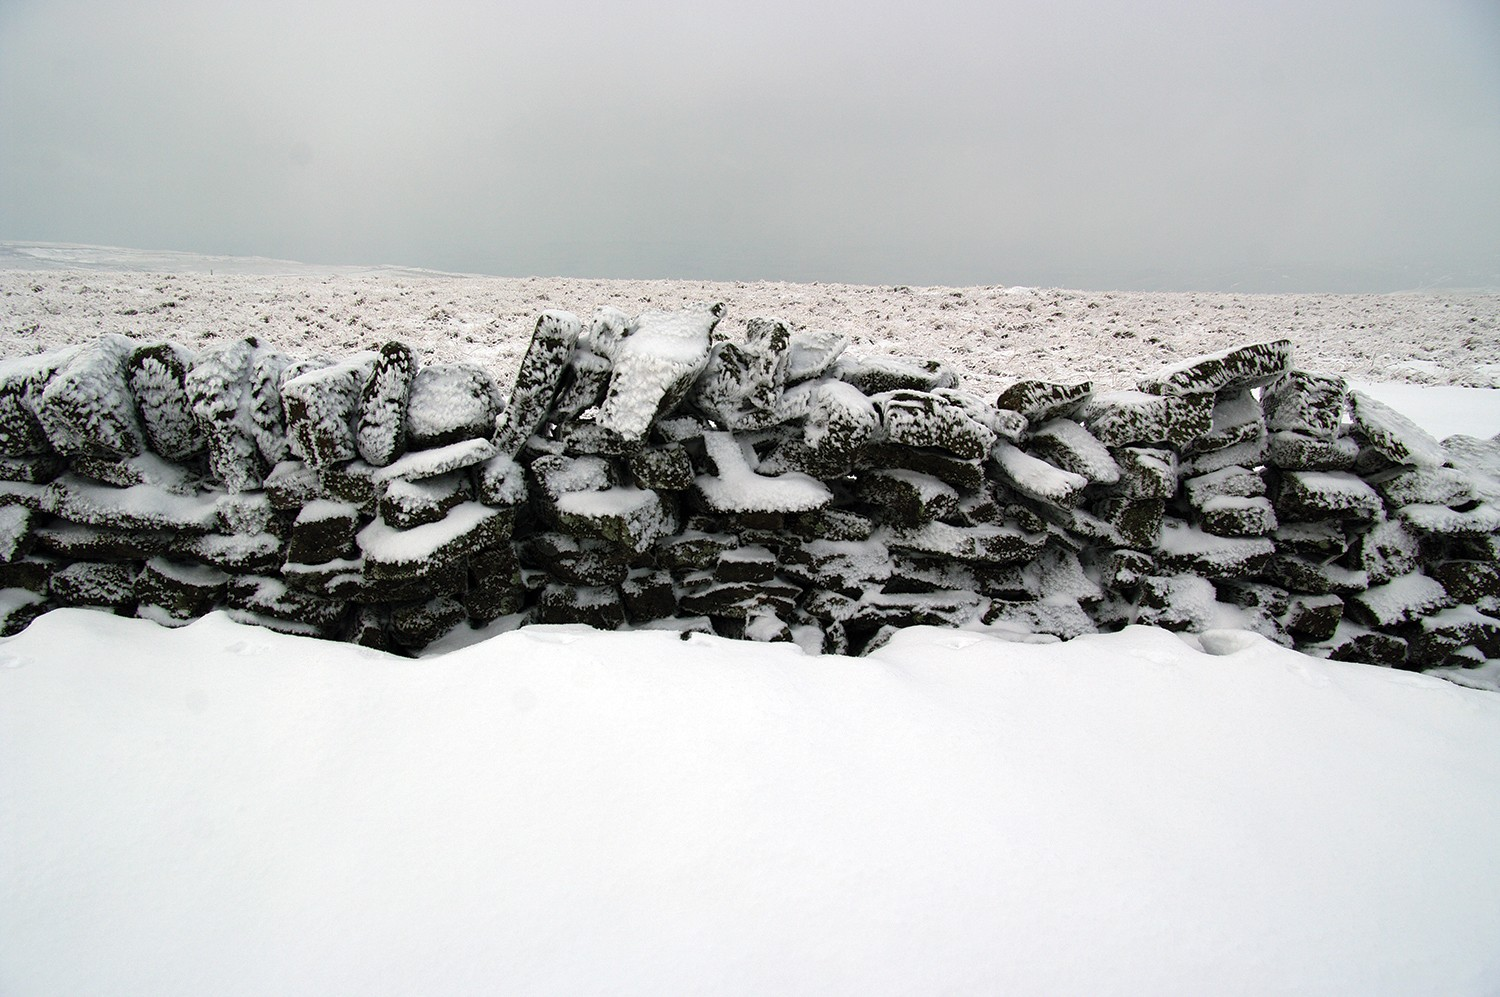 A barricade in a field covered in ice.